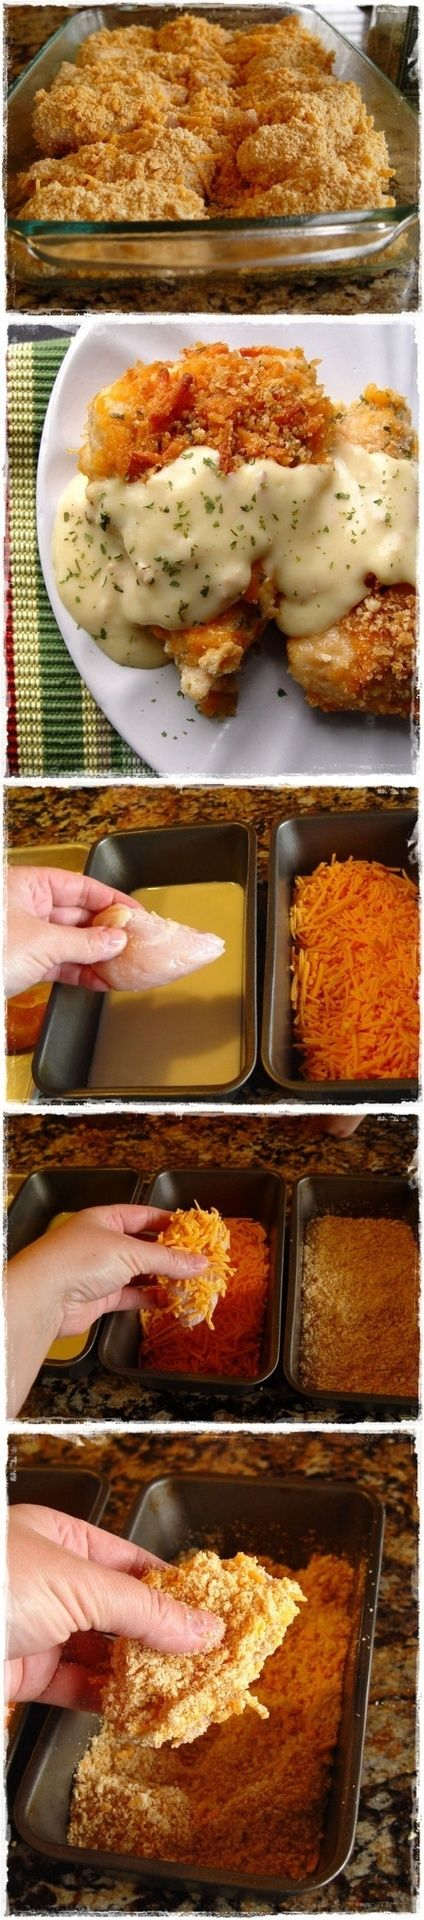 Crispy Cheddar Chicken Recipe - Make low-carb with pork rinds instead of crackers, and heavy cream watered down in place of milk; omit or replace sauce.